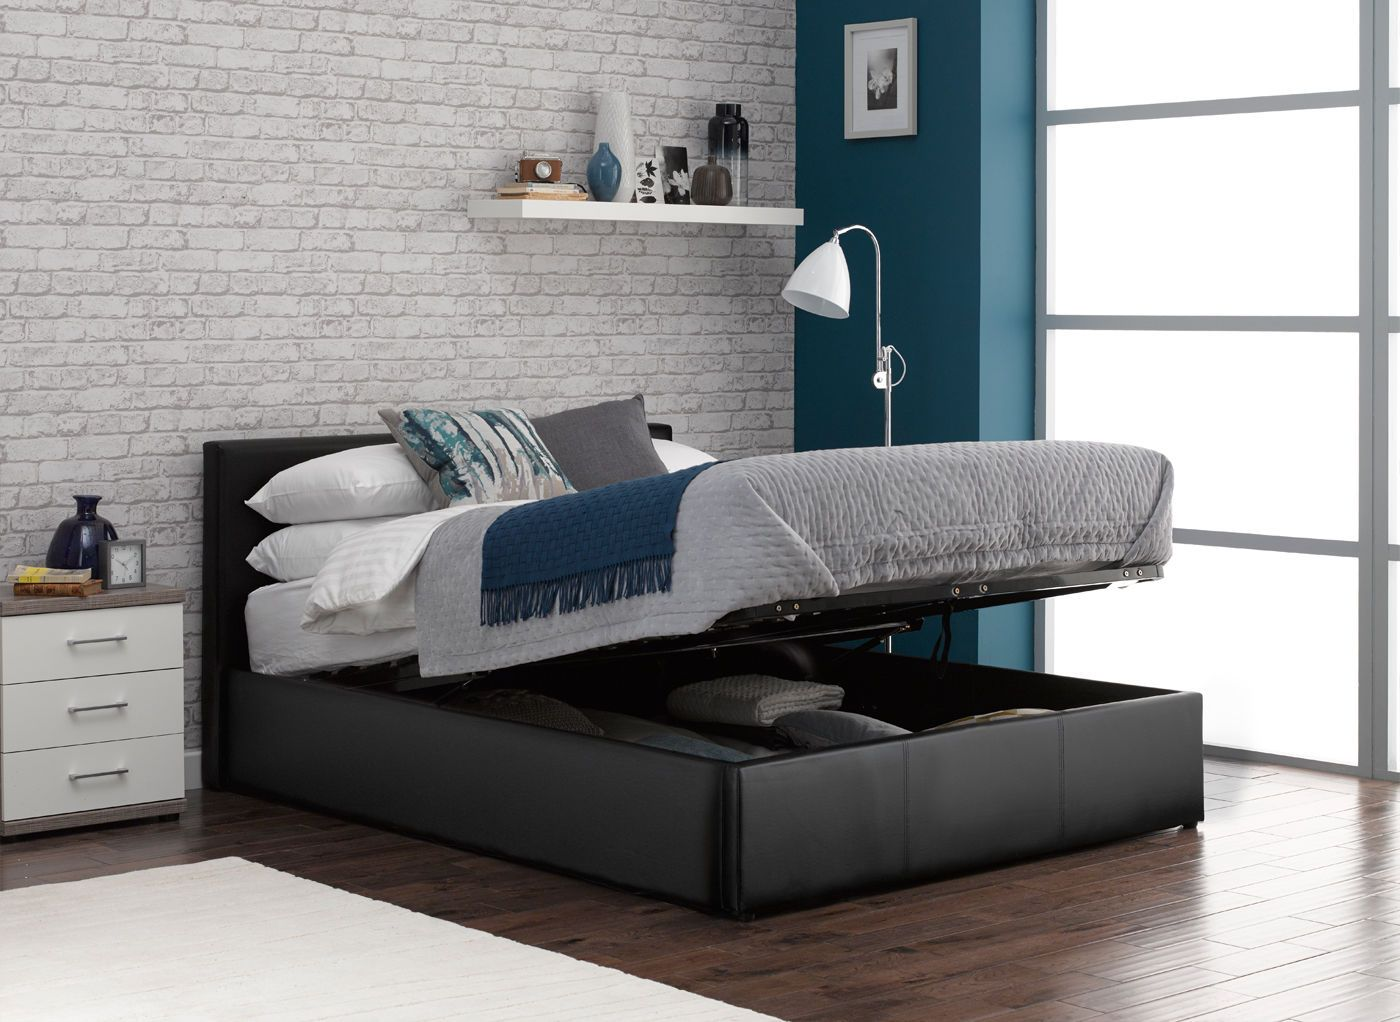 Yardley Upholstered Ottoman Bed Frame Leather bed frame